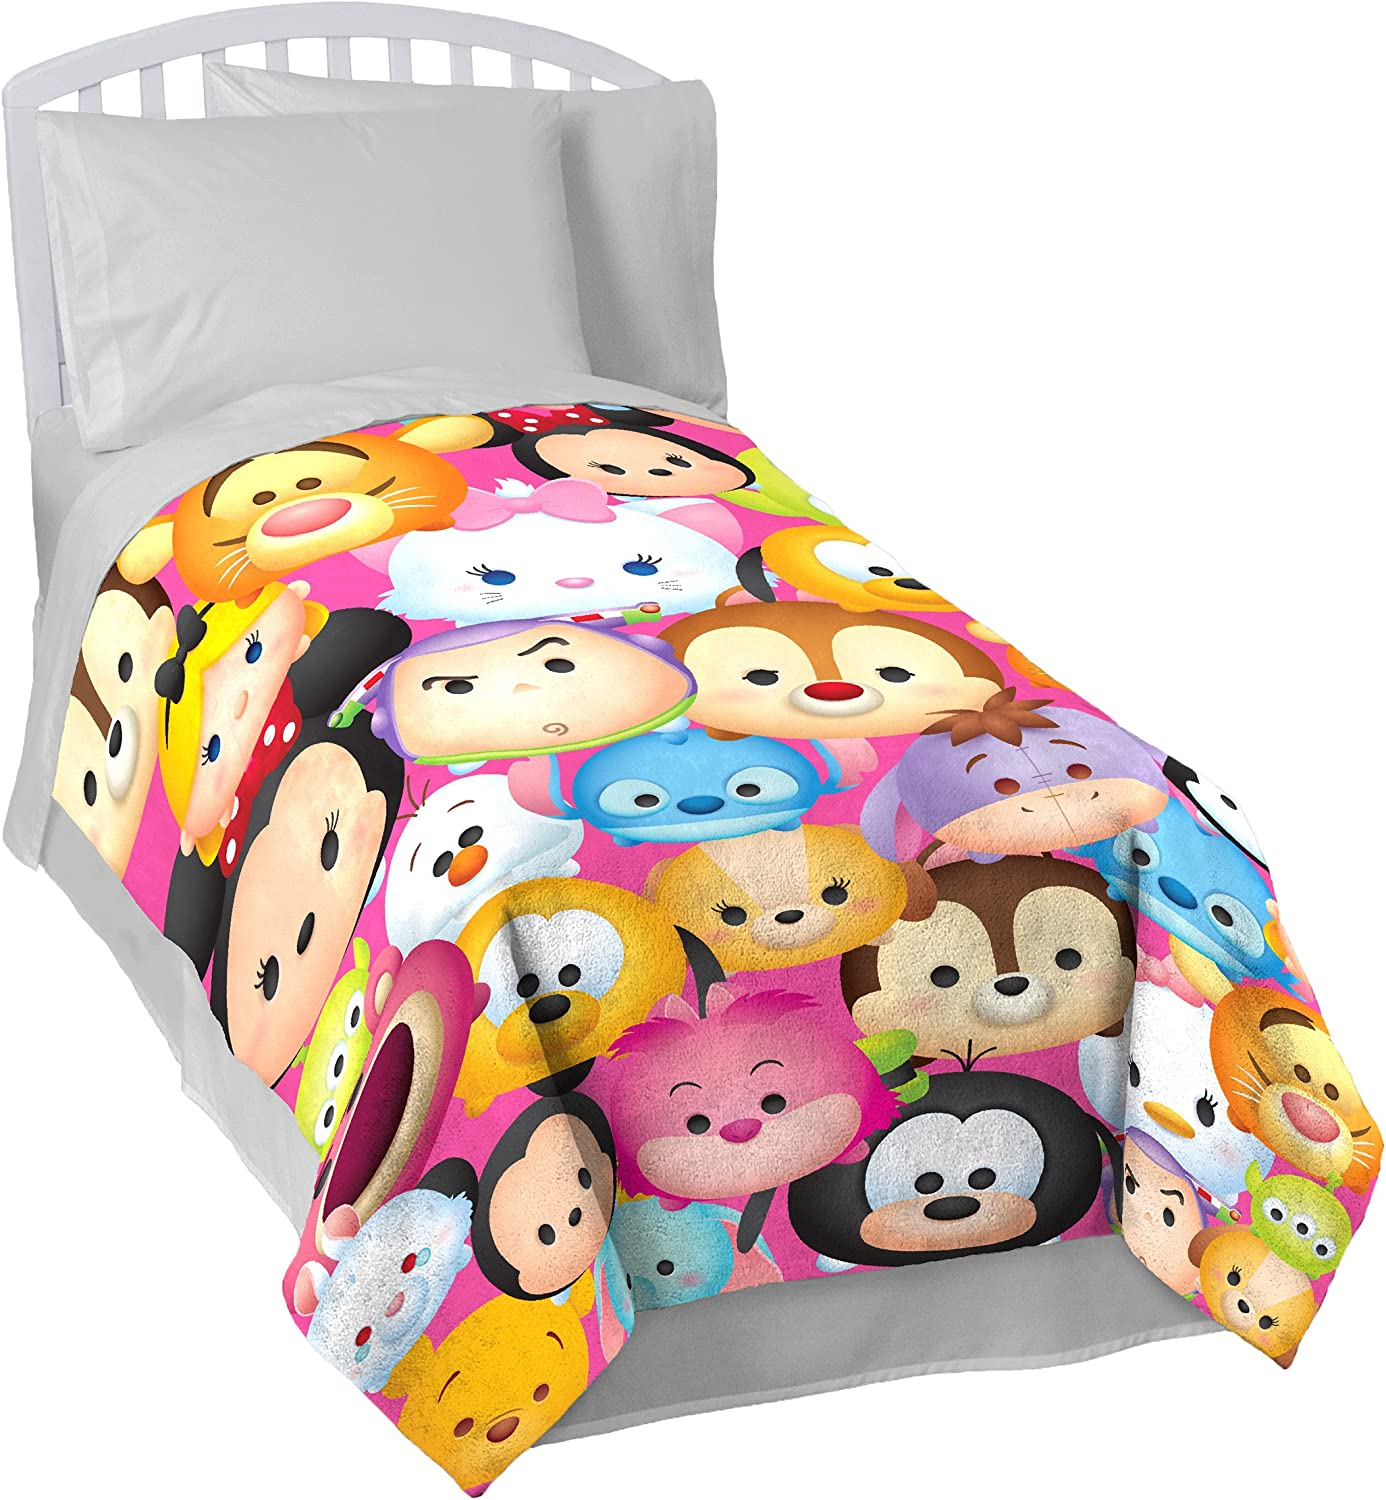 """Disney Tsum Tsum """"Faces"""" Flannel Plush with Silk Touch Reverse 62"""" x 90"""" Twin Blanket"""